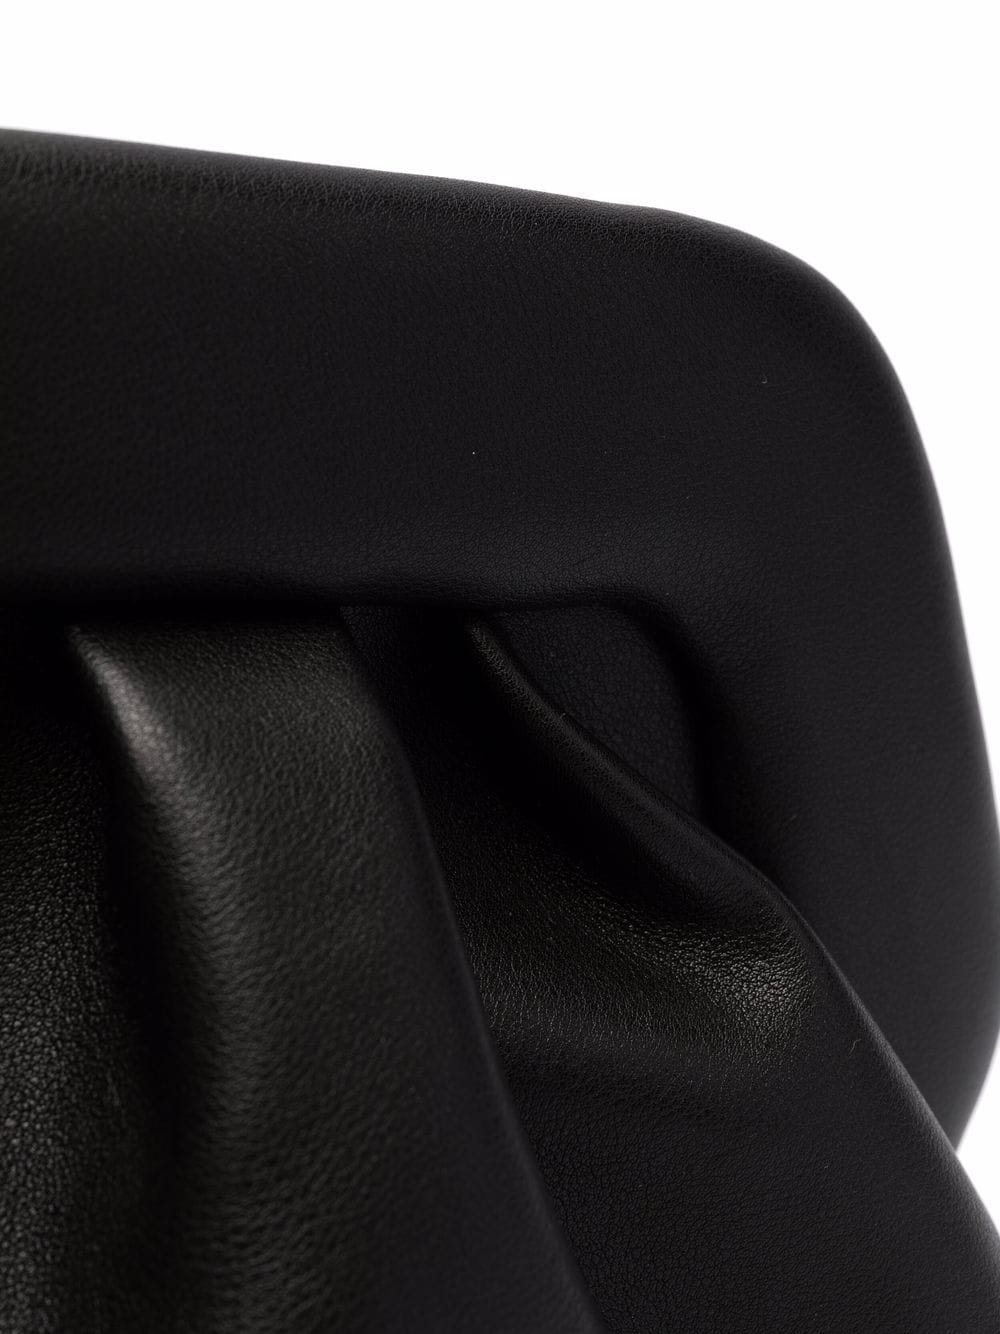 Picture of Themoire`   Bios Clutch Bag